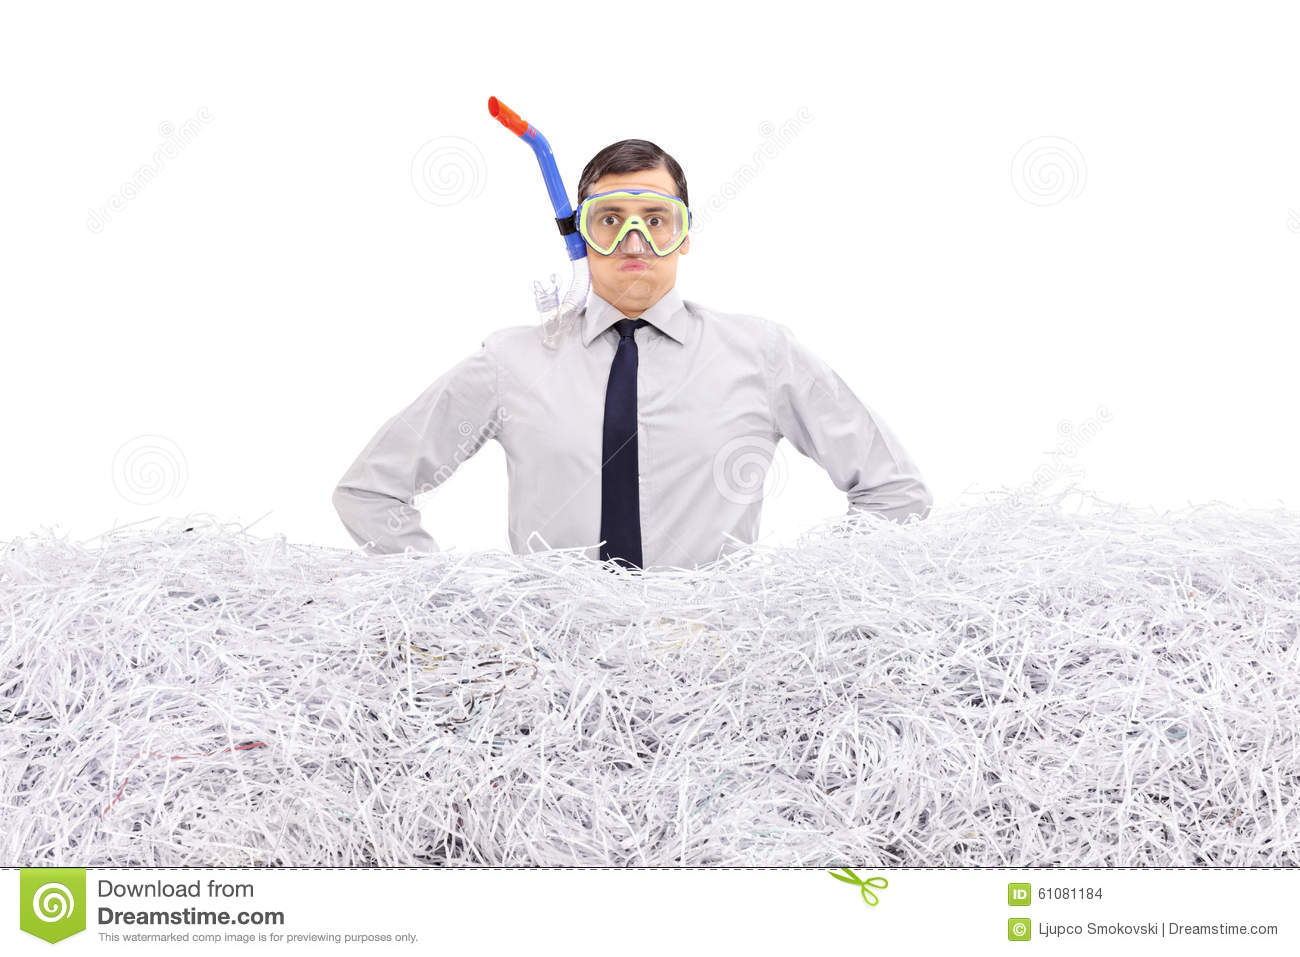 Businessman with snorkel standing in shredded paper